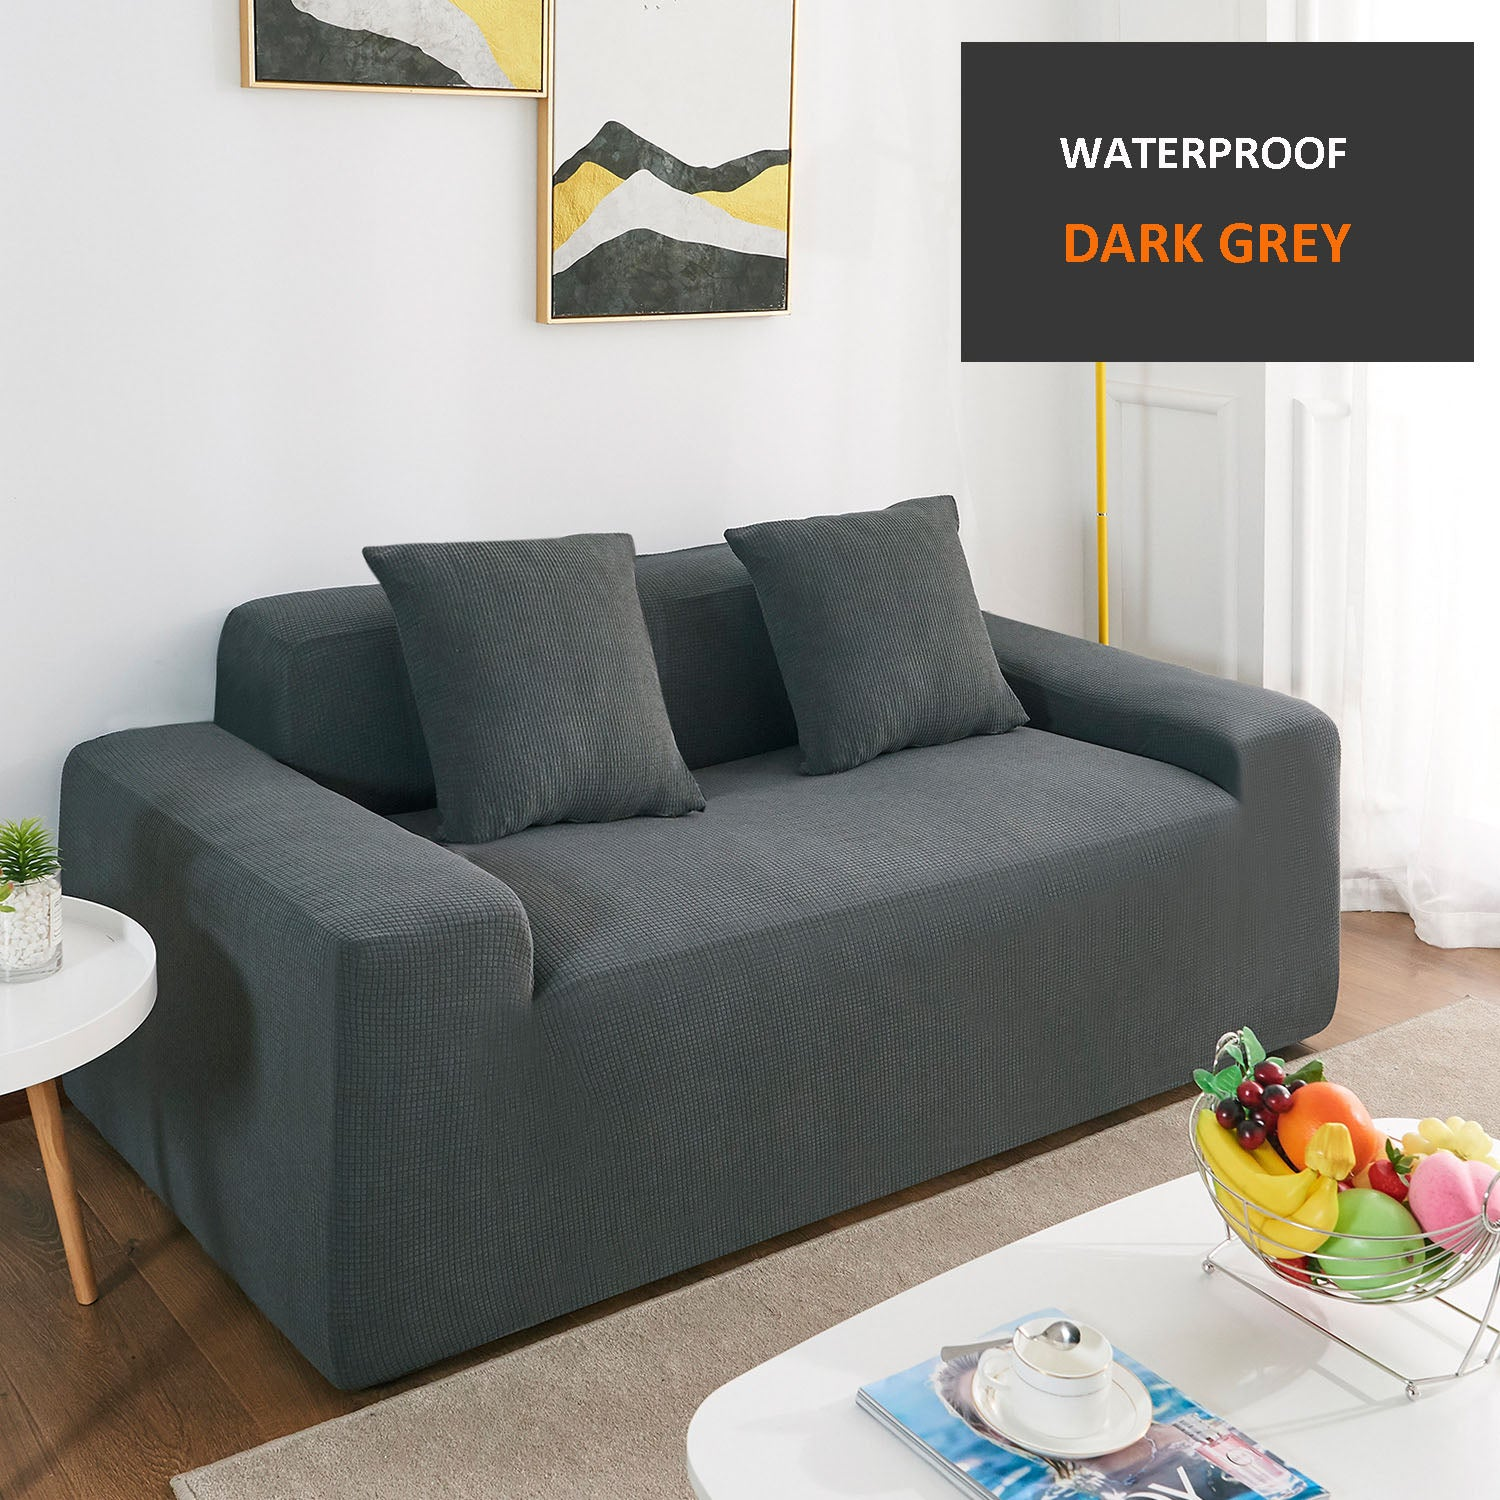 Stupendous High Quality Waterproof Sofa Cover Pabps2019 Chair Design Images Pabps2019Com